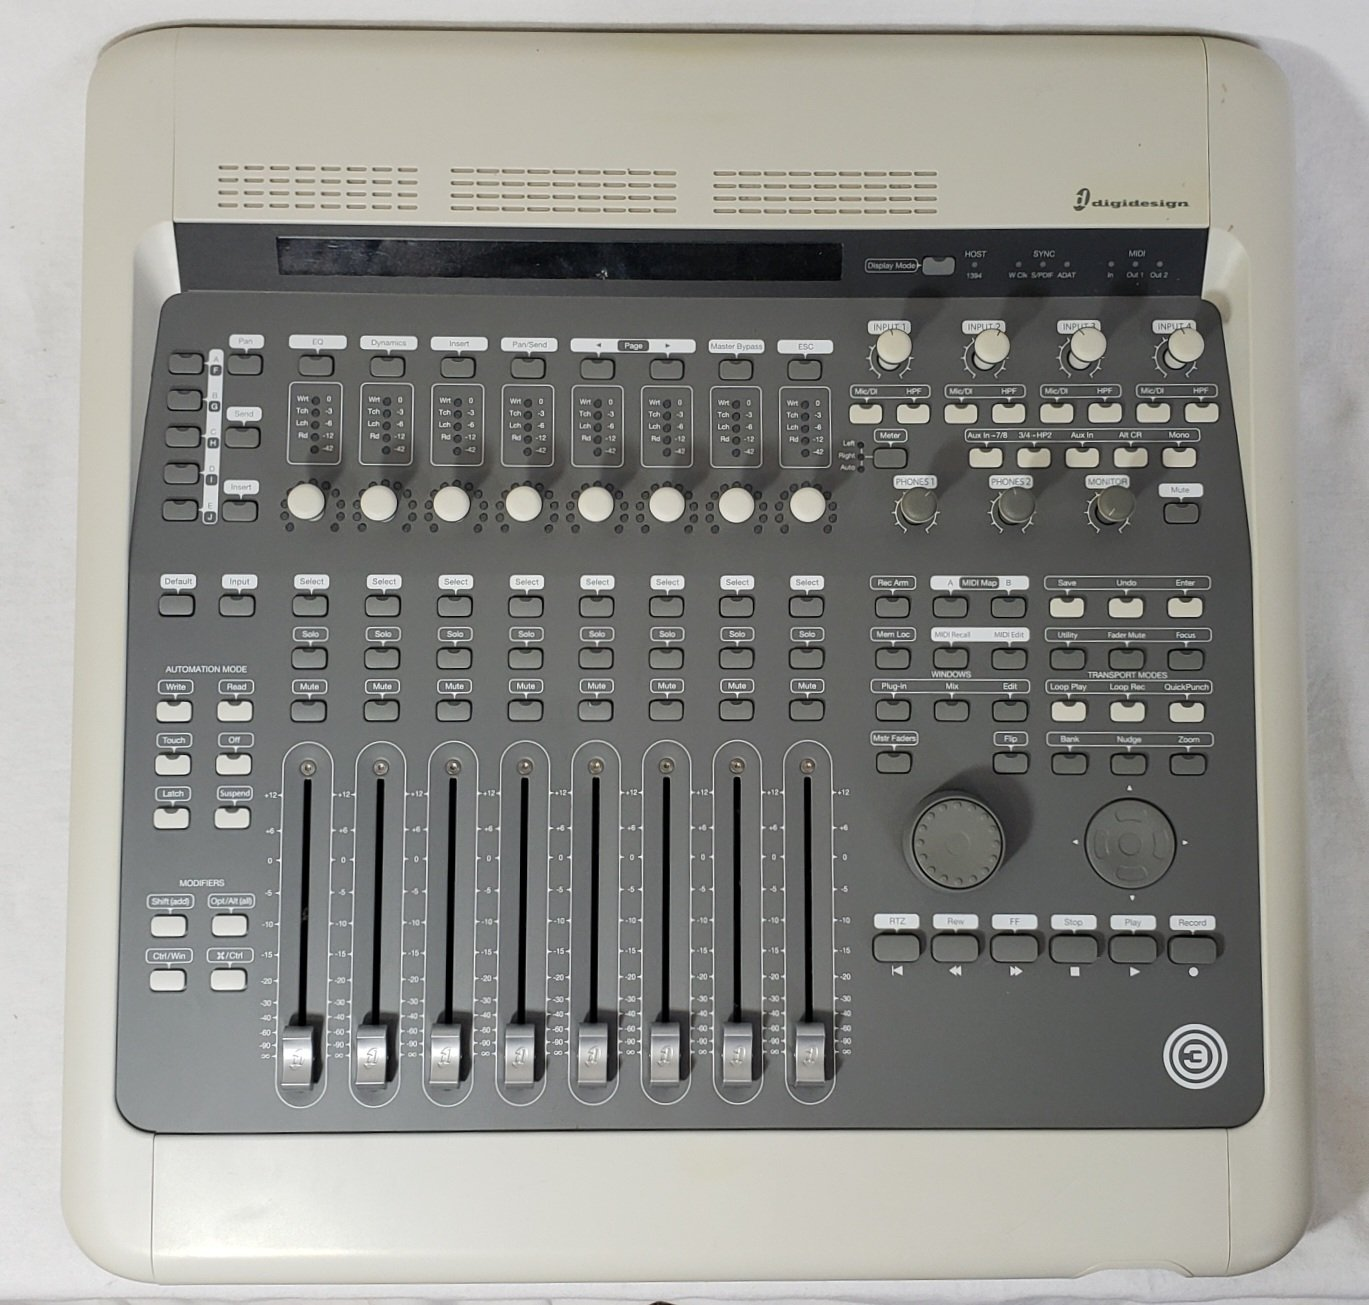 DIGIDESIGN 003 TABLE TOP AUDIO INTERFACE (HARDWARE ONLY)